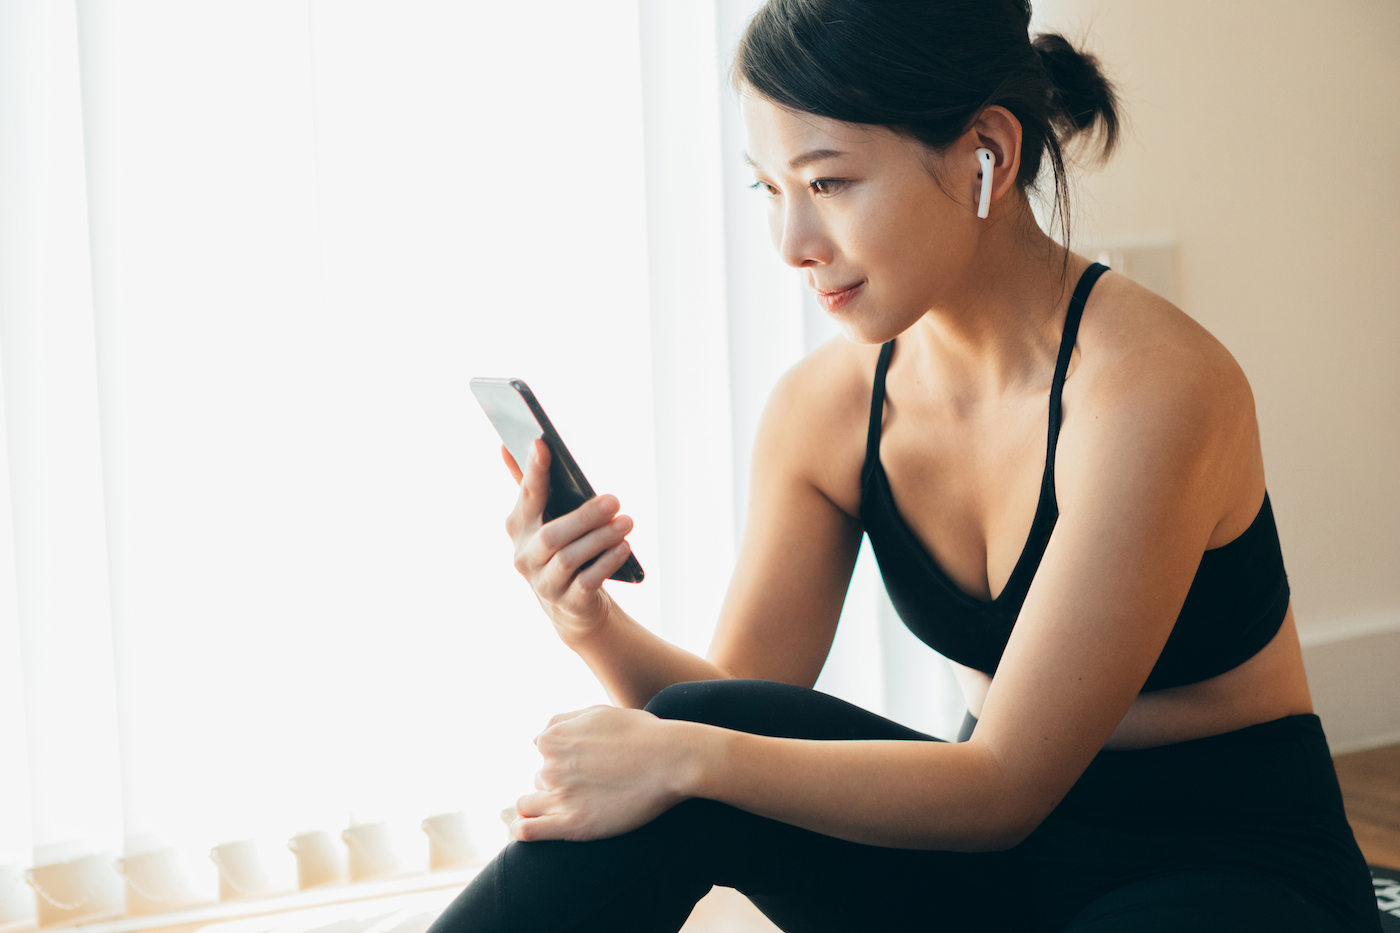 Thumbnail for Equinox's Variis App Is Making the Best of Boutique Fitness Accessible to All